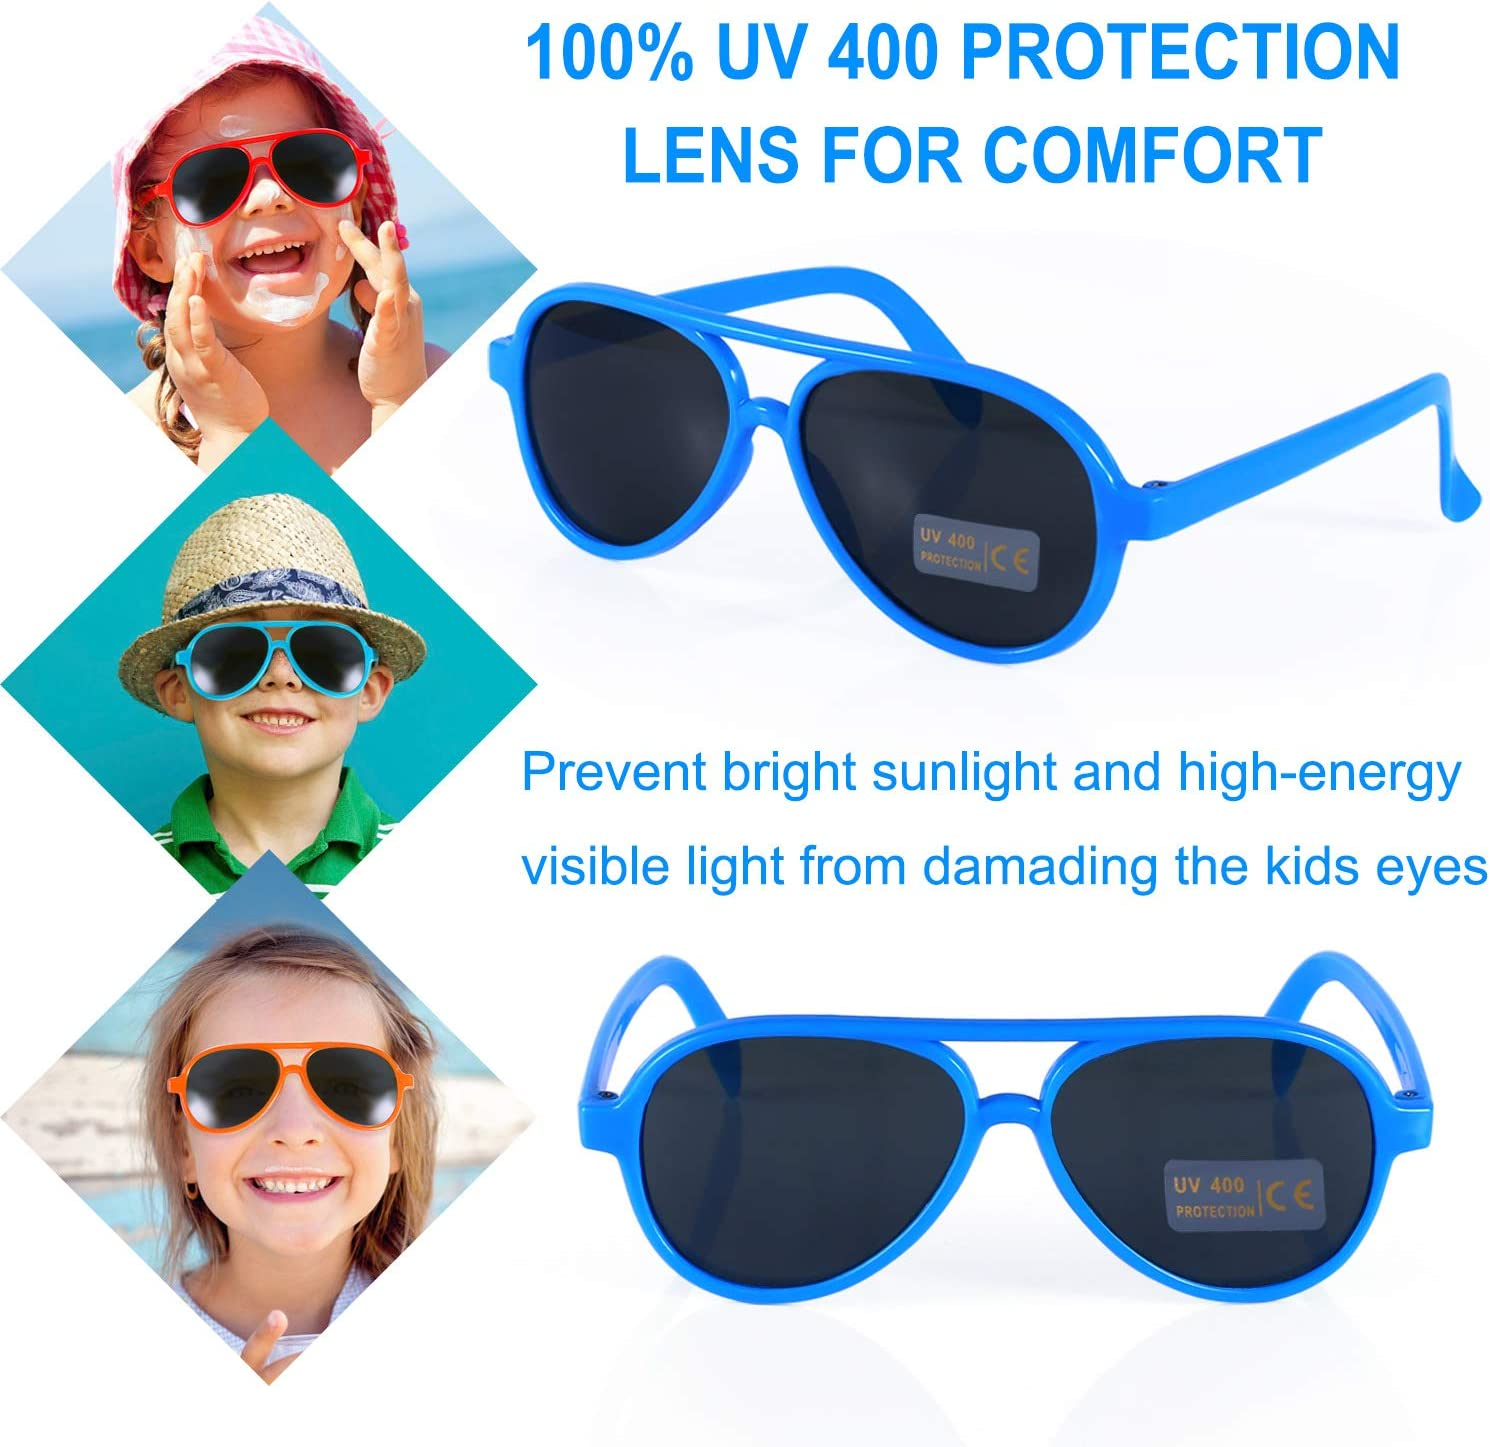 Beach Party Toys Goody Bag Stuffers Kids Sunglasses Party Favors Fun Gift for Children Birthday /& Graduation Party Supplies Aviator Sunglasses in Bulk 24 Pack for Kids Pool Party Favors